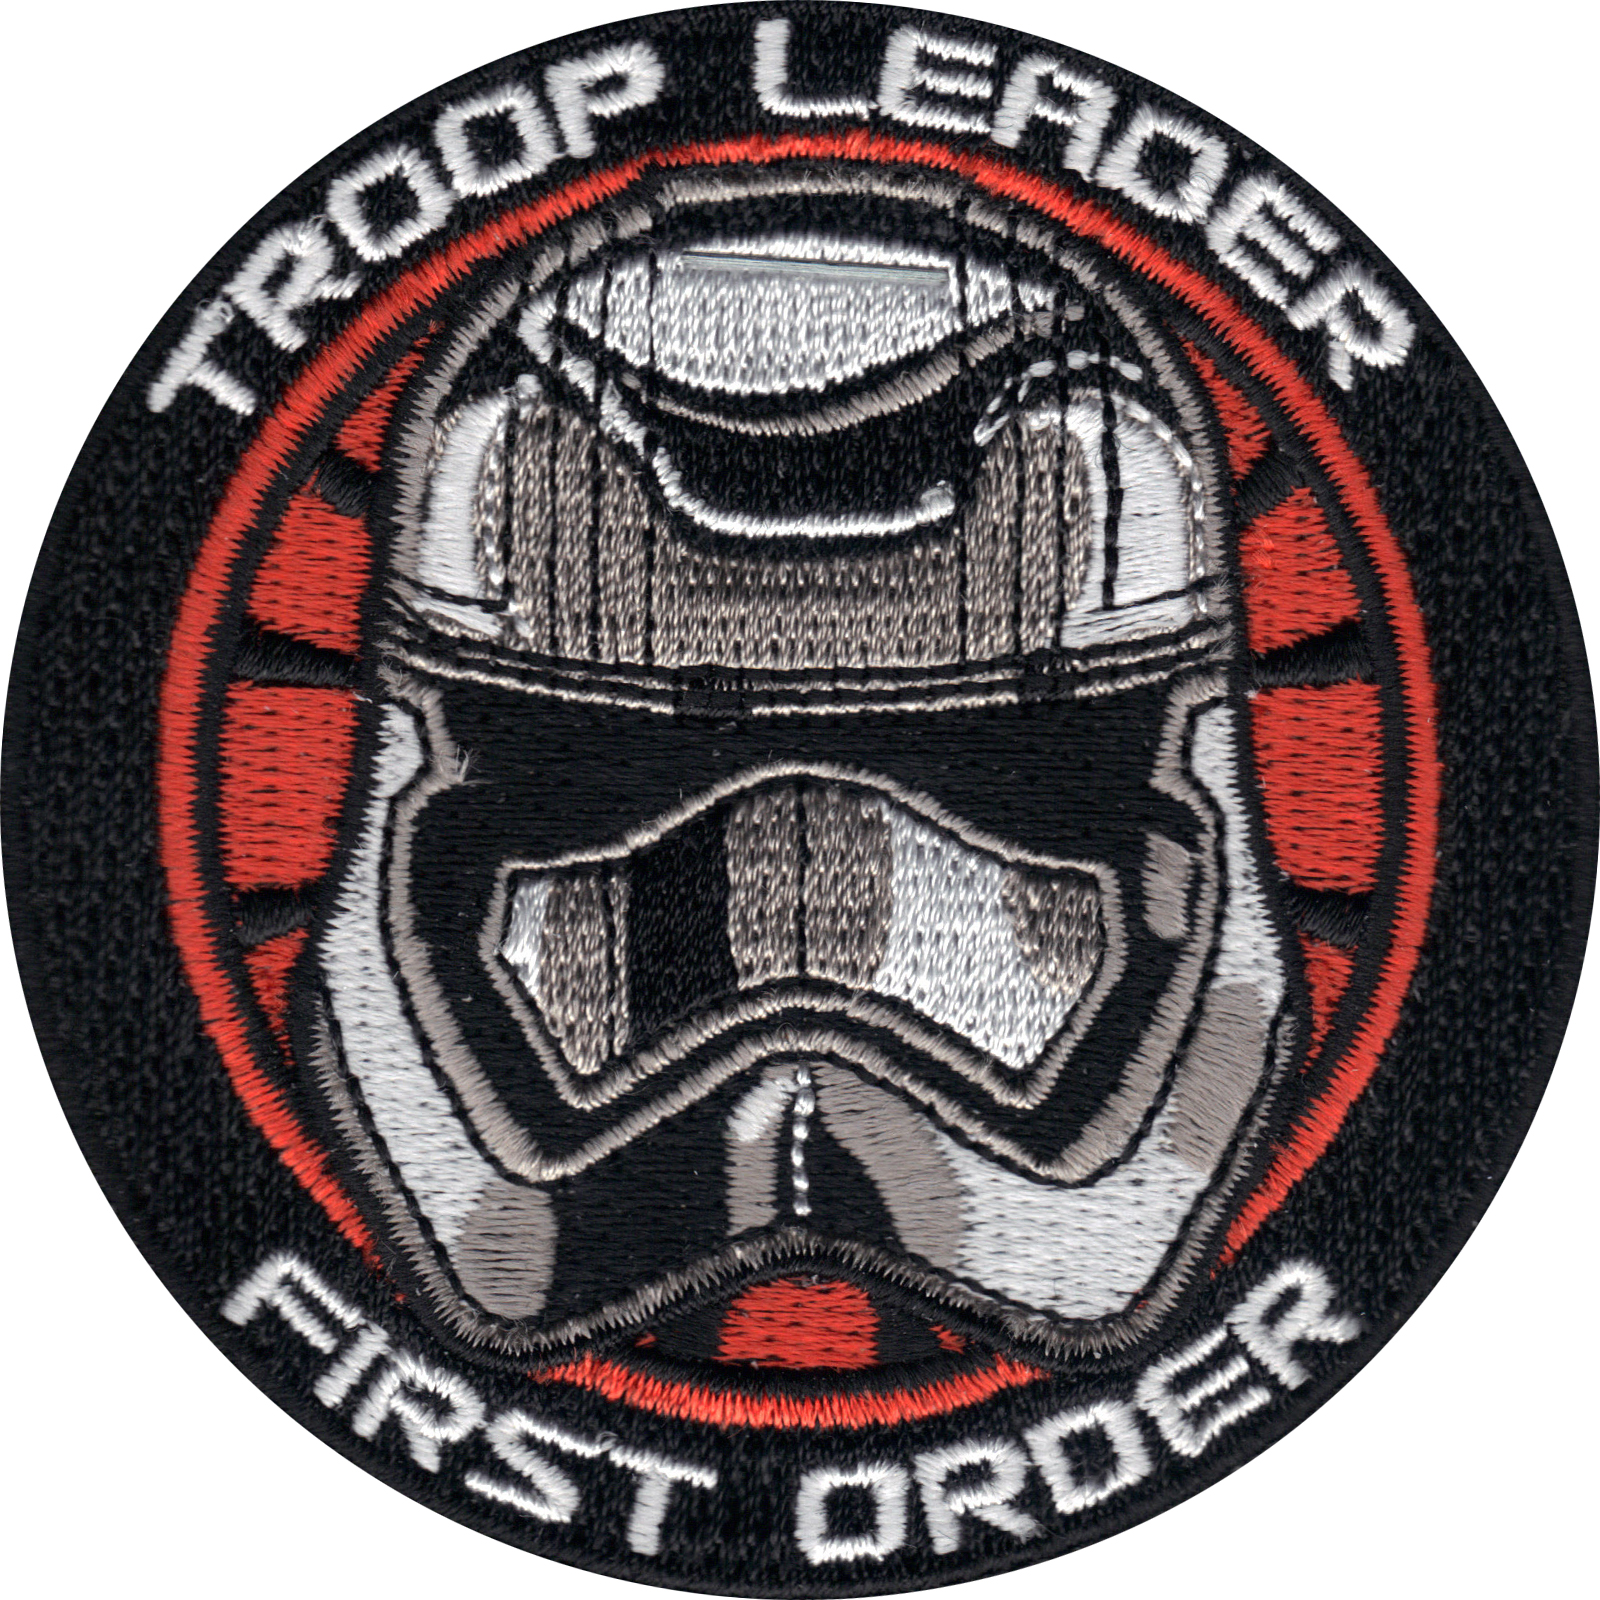 Star Wars 'Troop Leader' Captain Phasma Iron On Patch